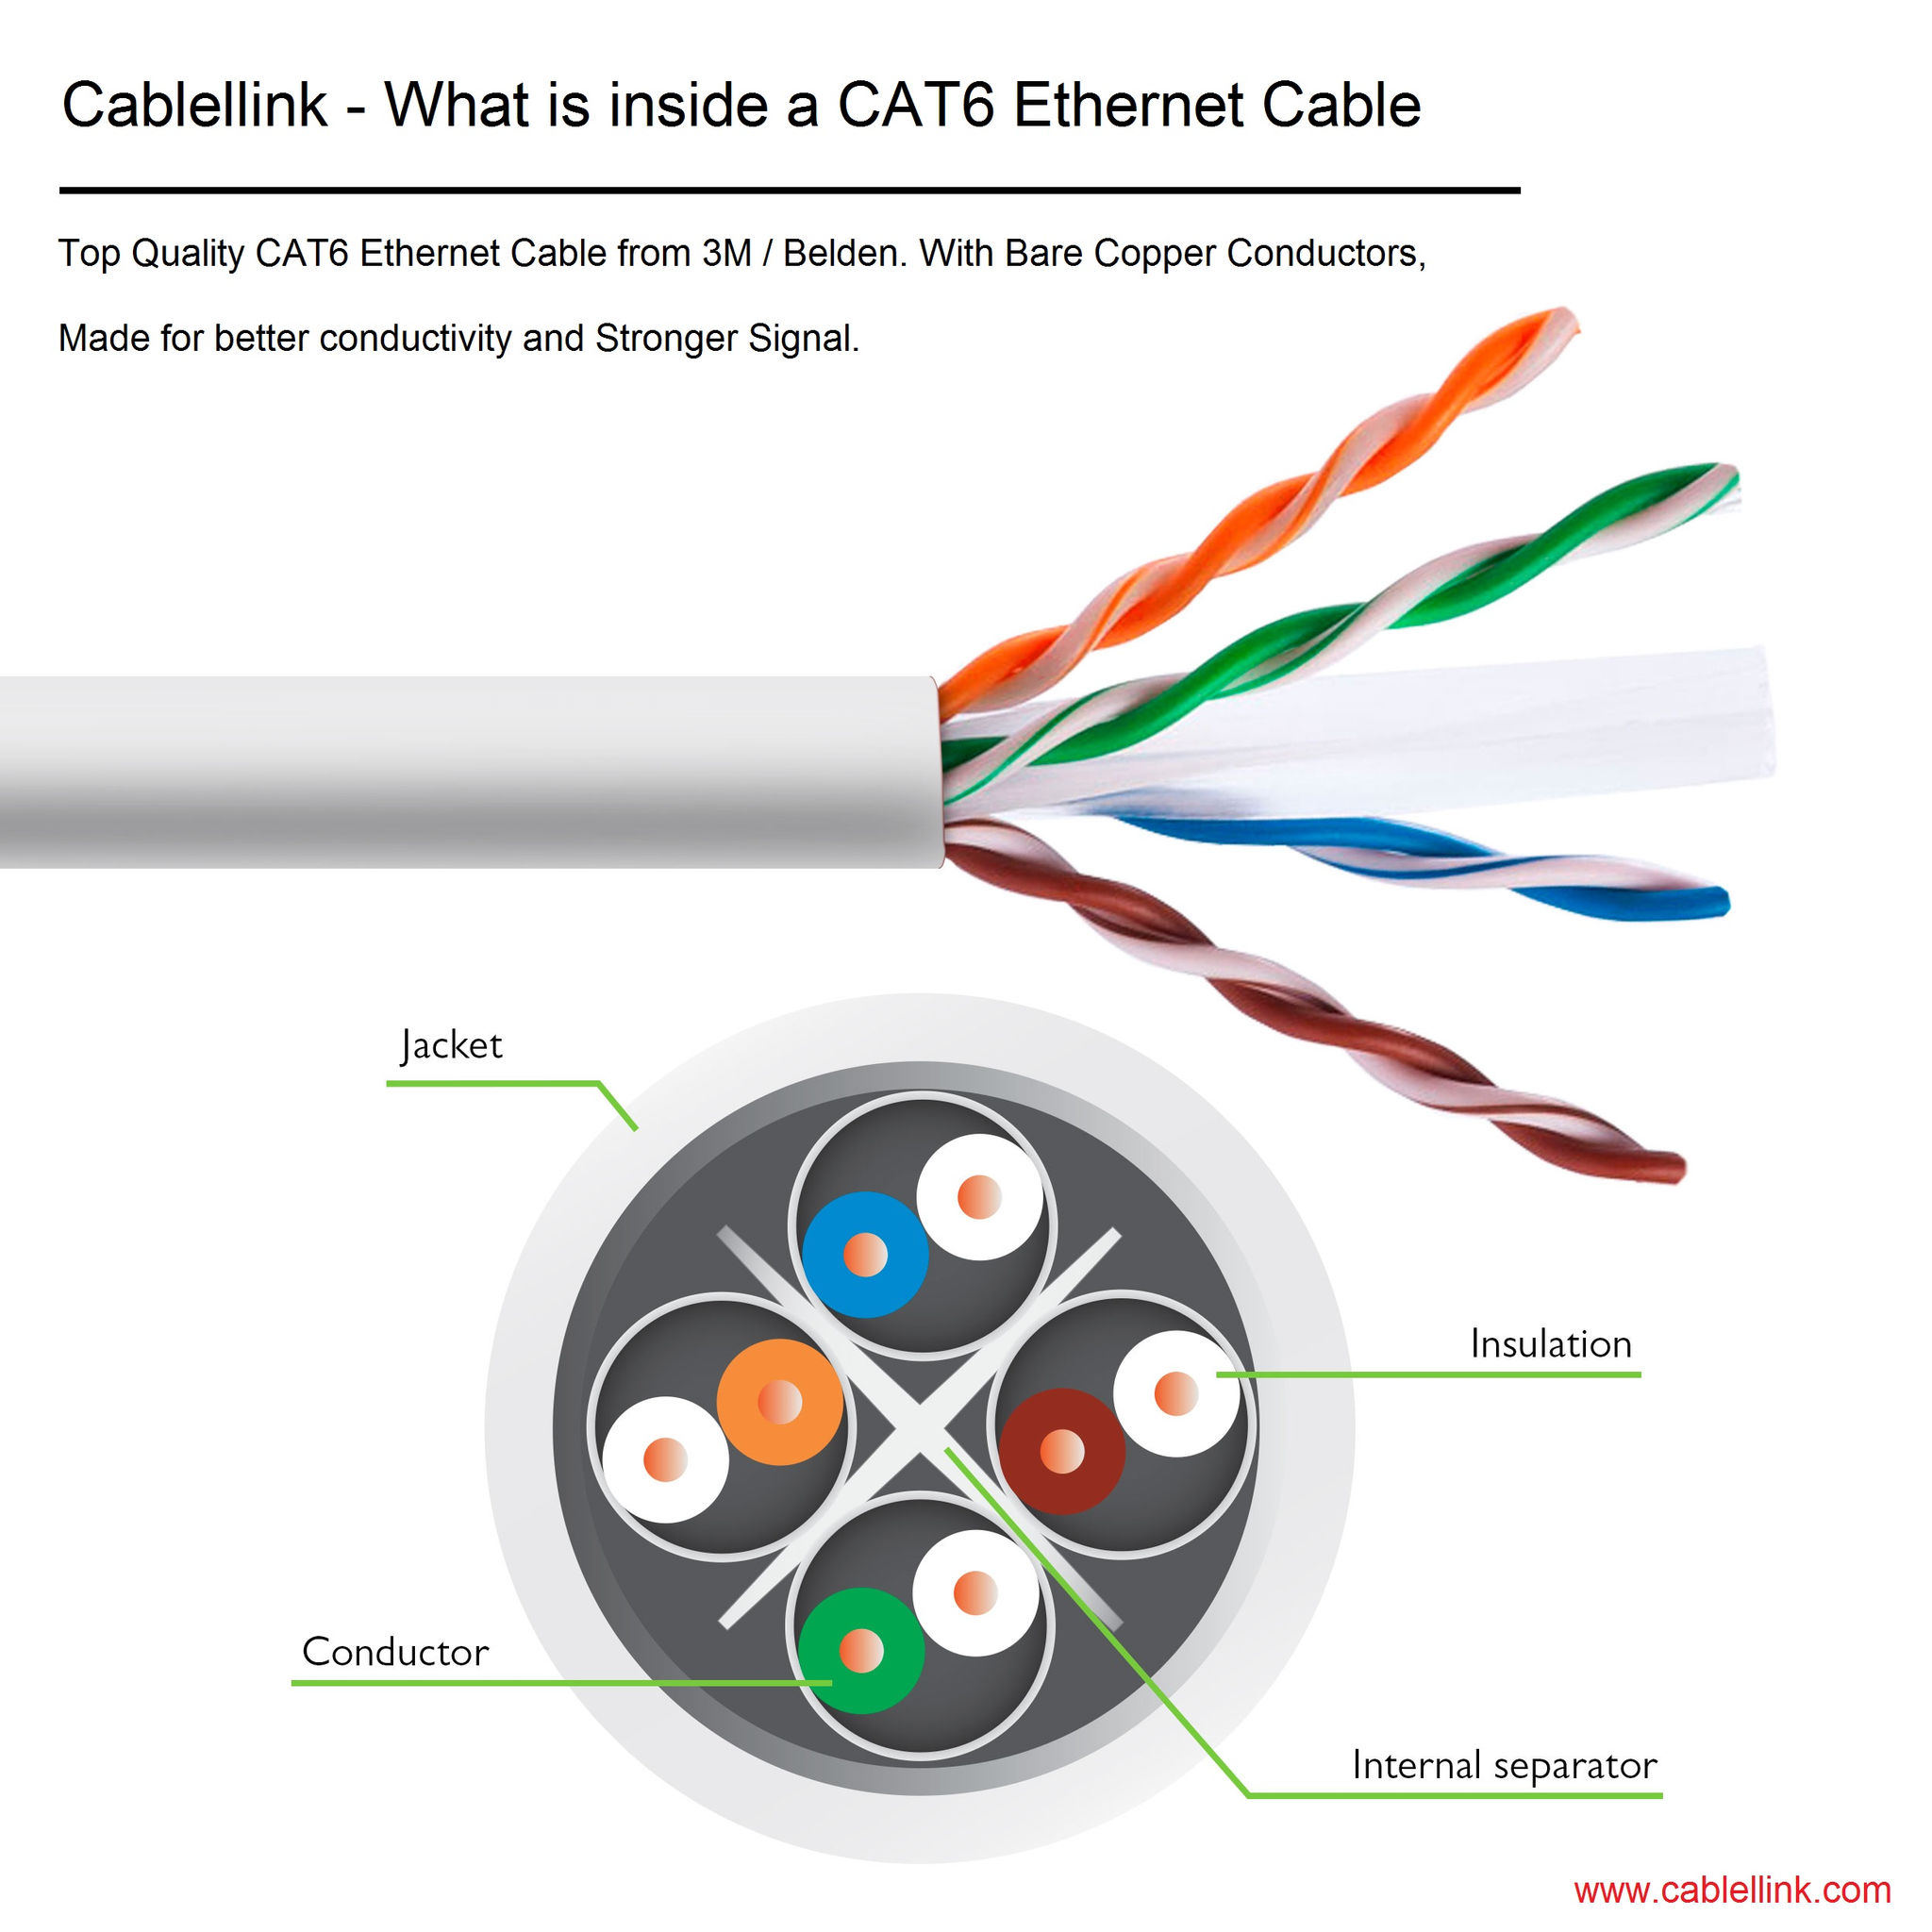 What Does A Cat6 Cable Category 6 Mean Gigabit Ethernet Wiring Is Twisted Pair Specifically Used In Gb Computer Network